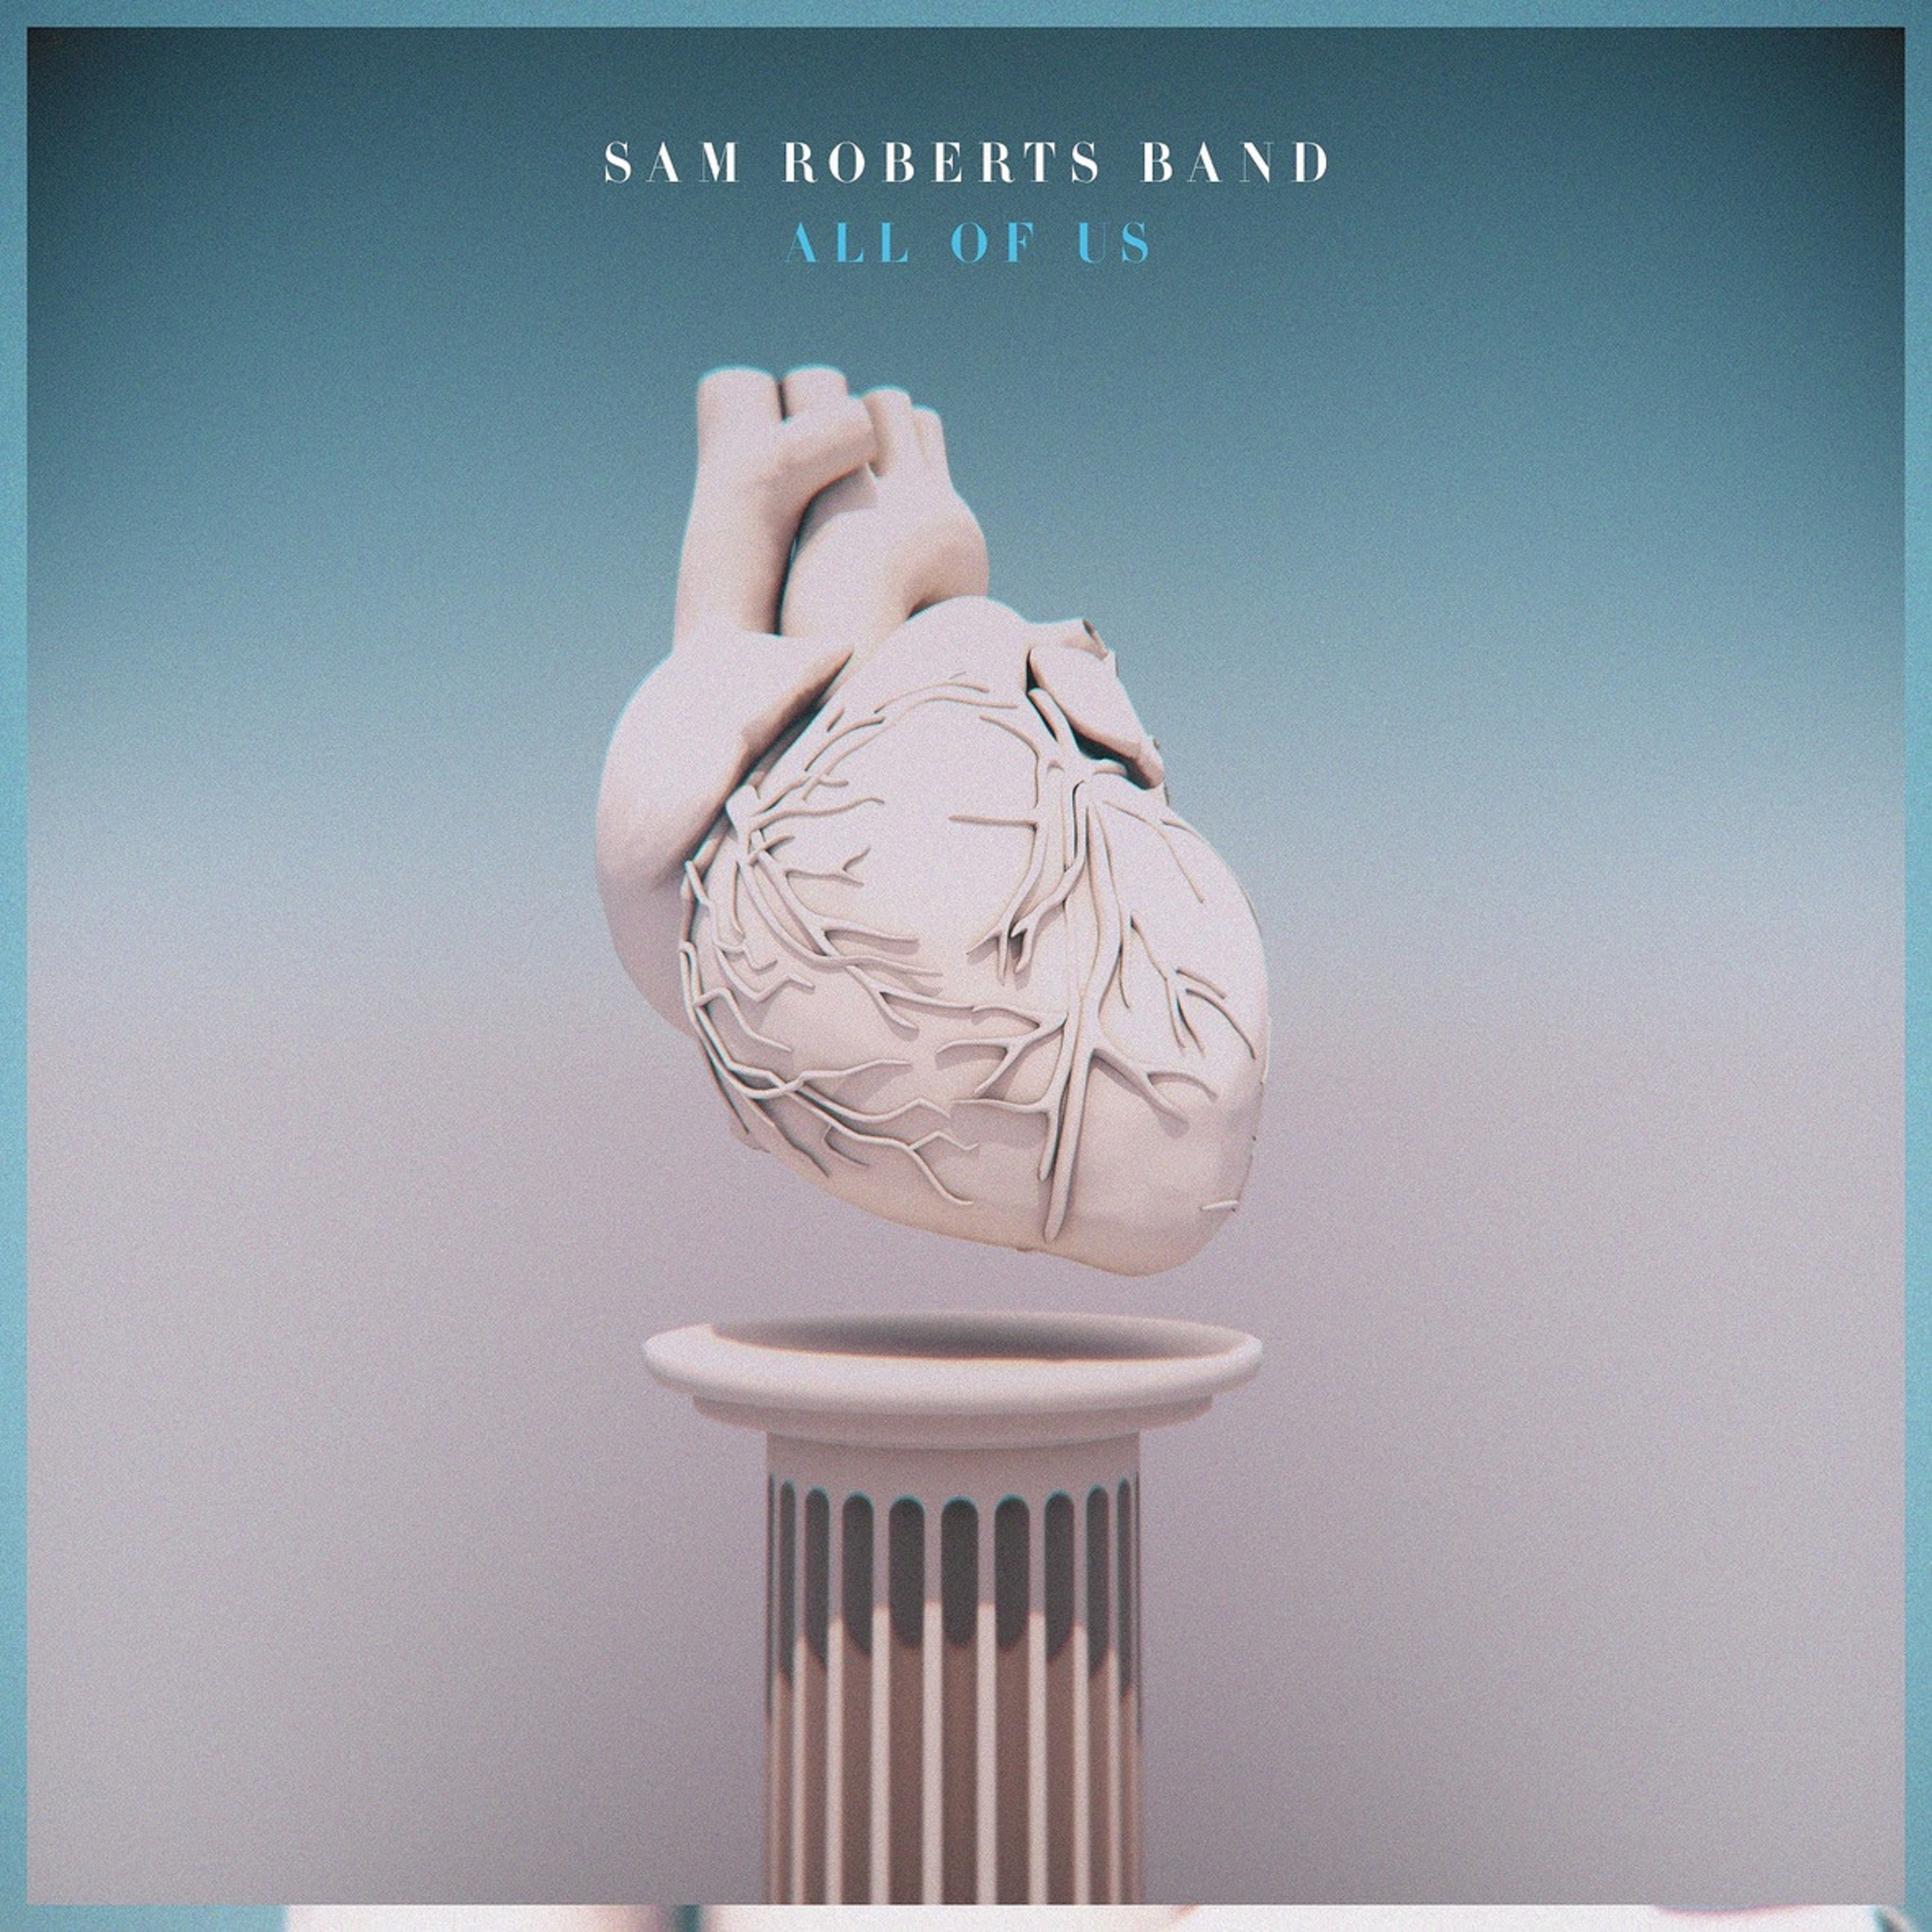 Out now: 'ALL OF US' by Sam Roberts Band